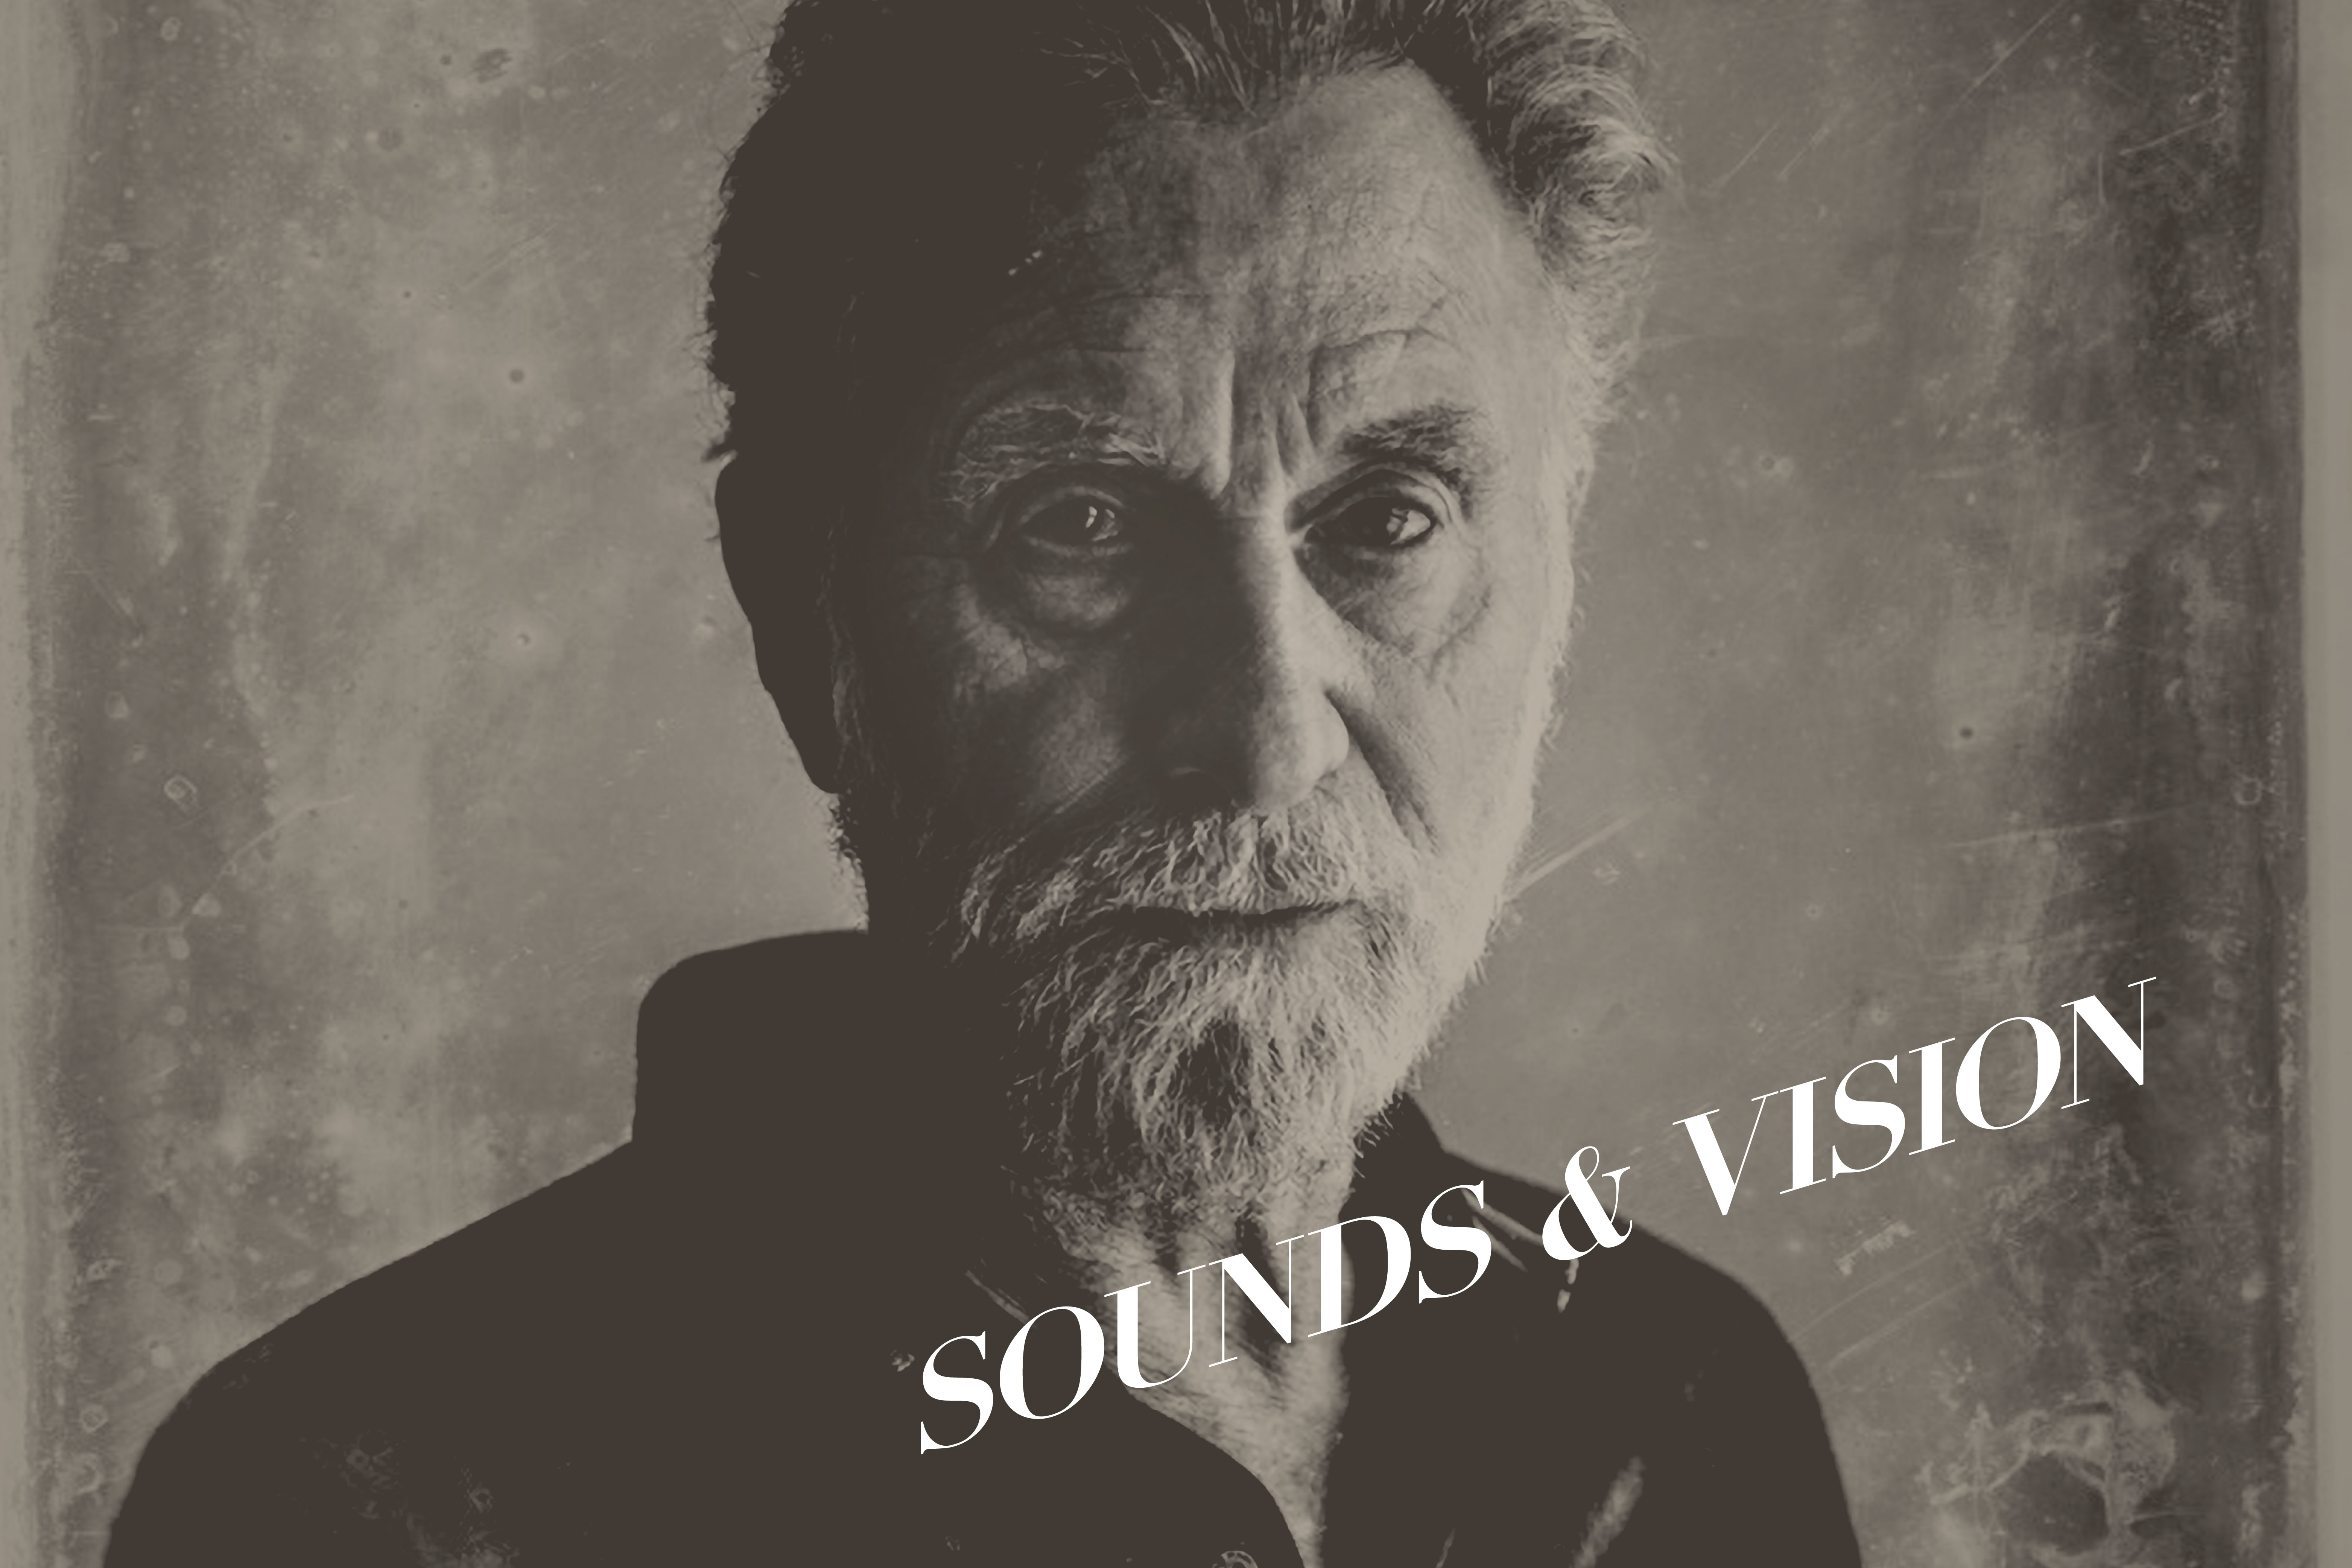 Sounds and Vision Podcast